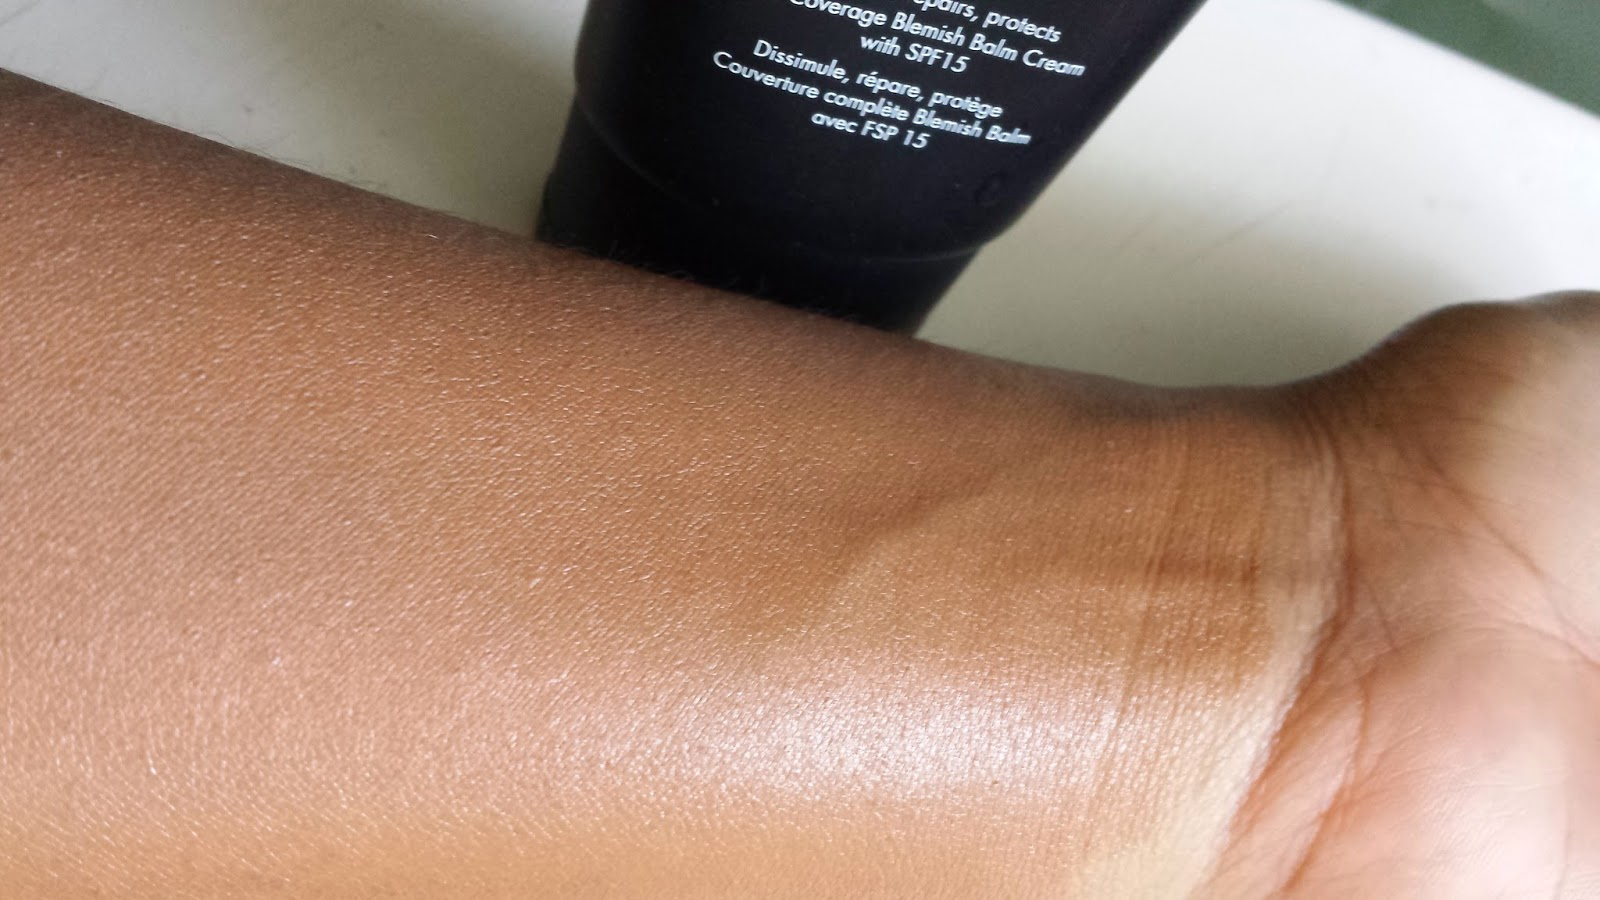 Sleek BB Cream swatch - www.modenmakeup.com